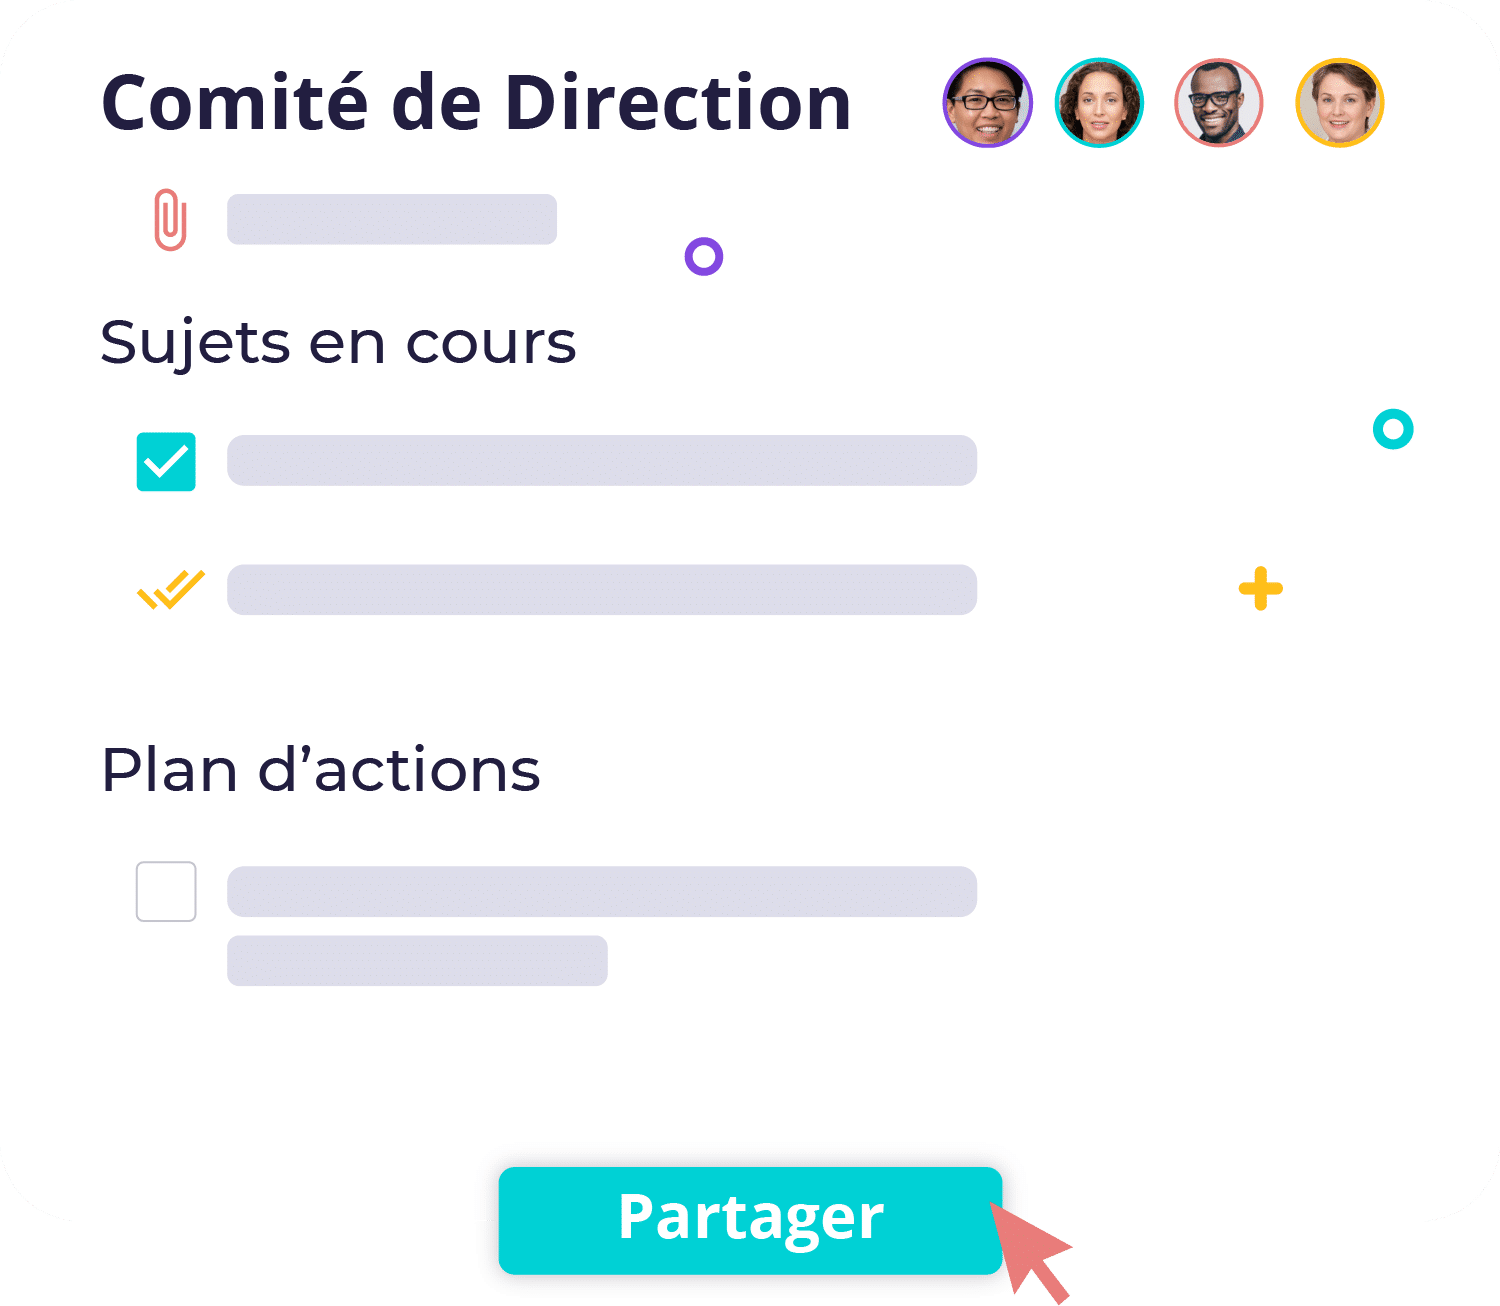 comité de direction